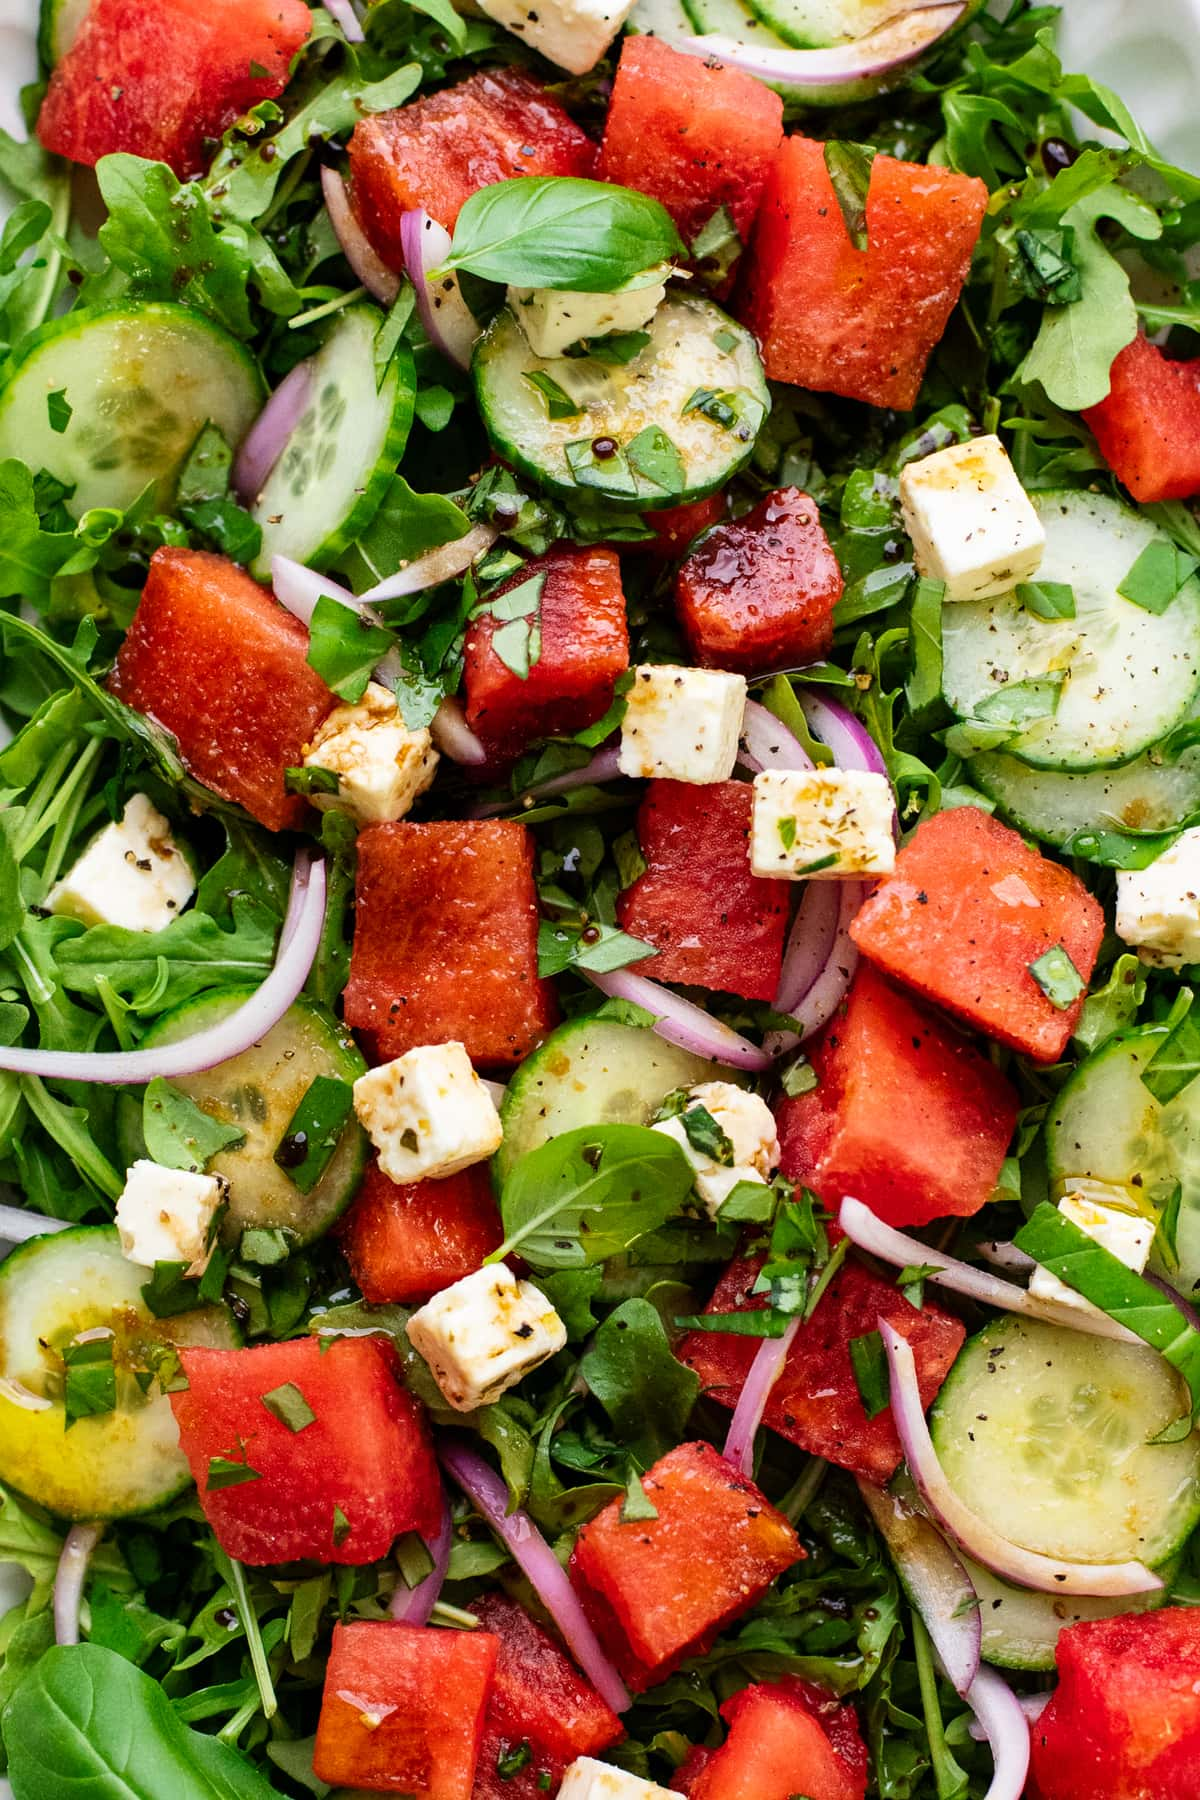 watermelon salad with feta and leafy greens.